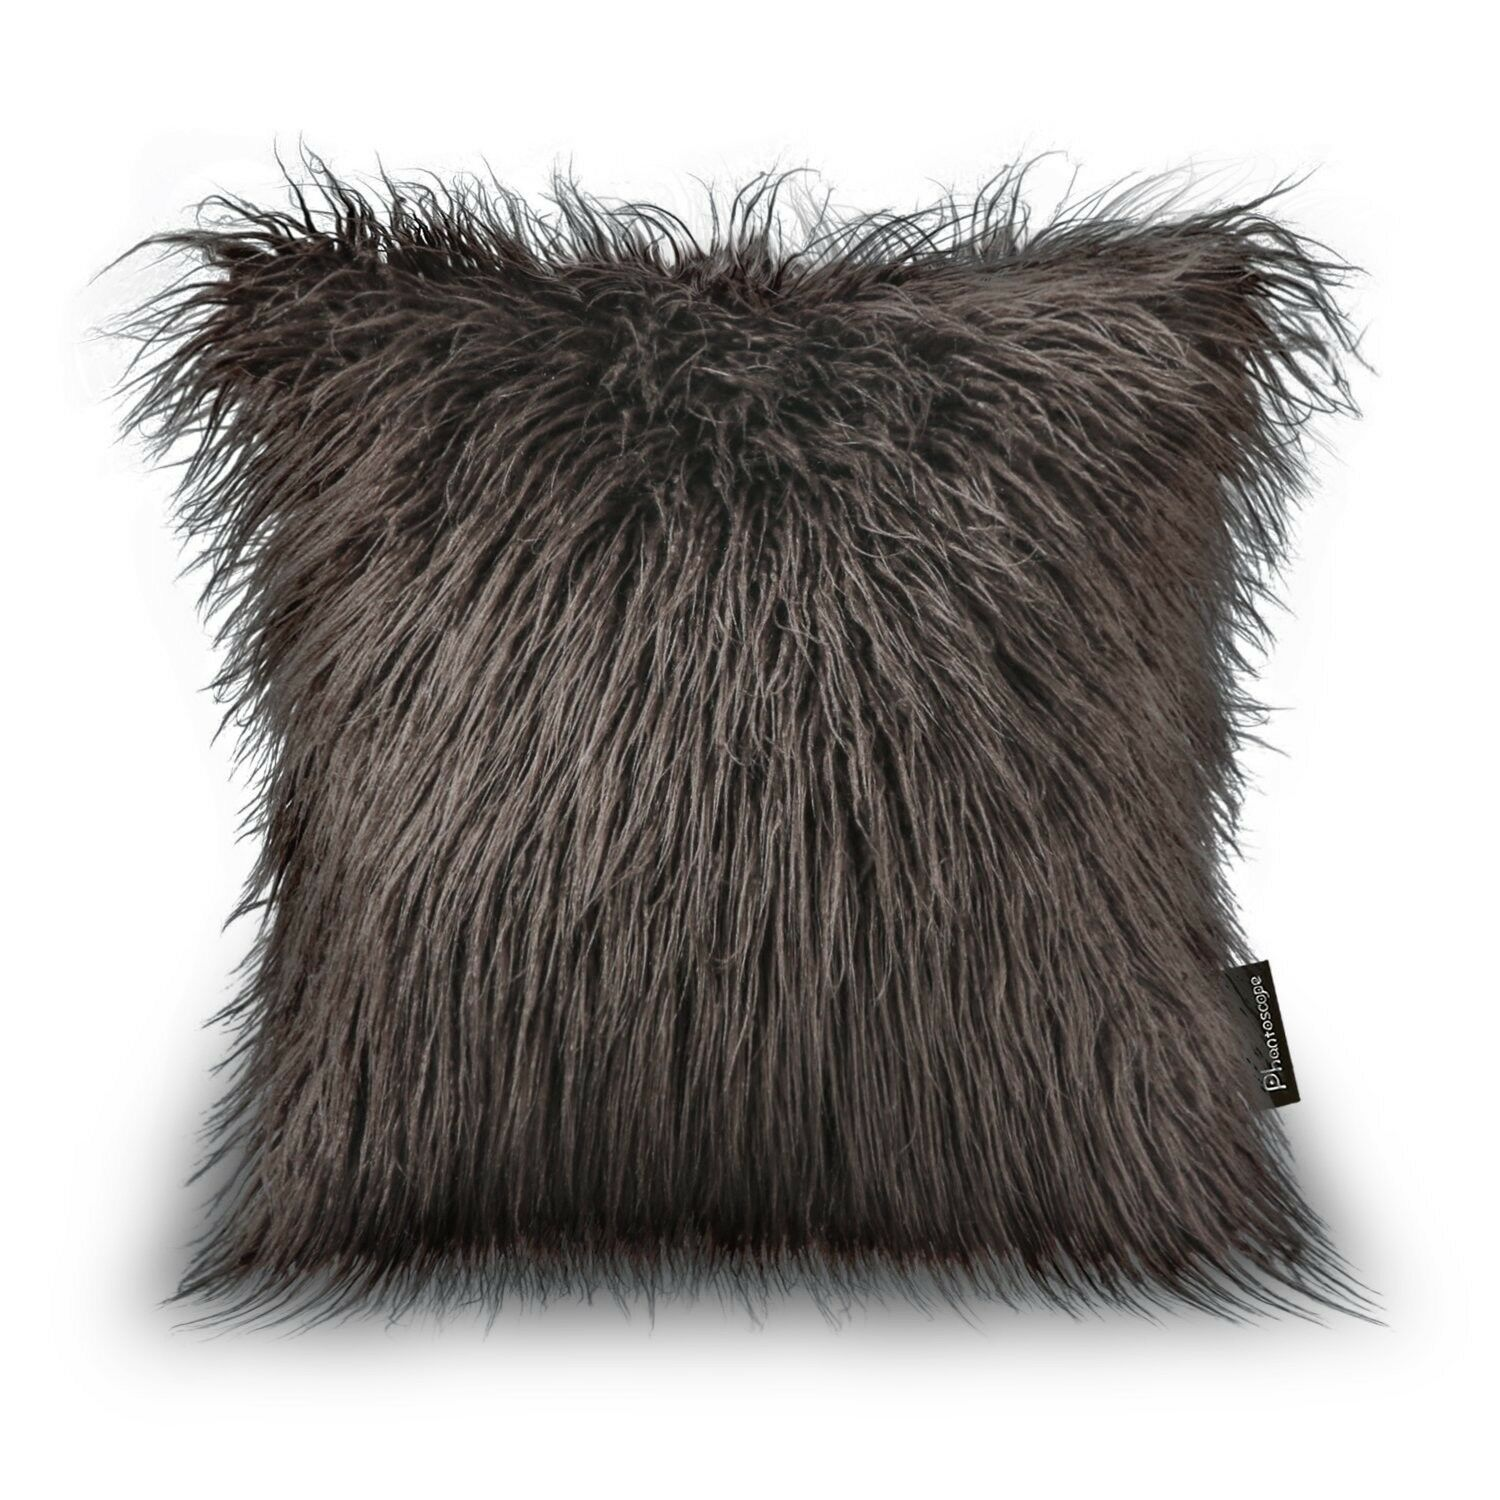 Fur Throw Pillow Case Cover Coffee Brown Rustic Sofa Couch Decor Gift Her New